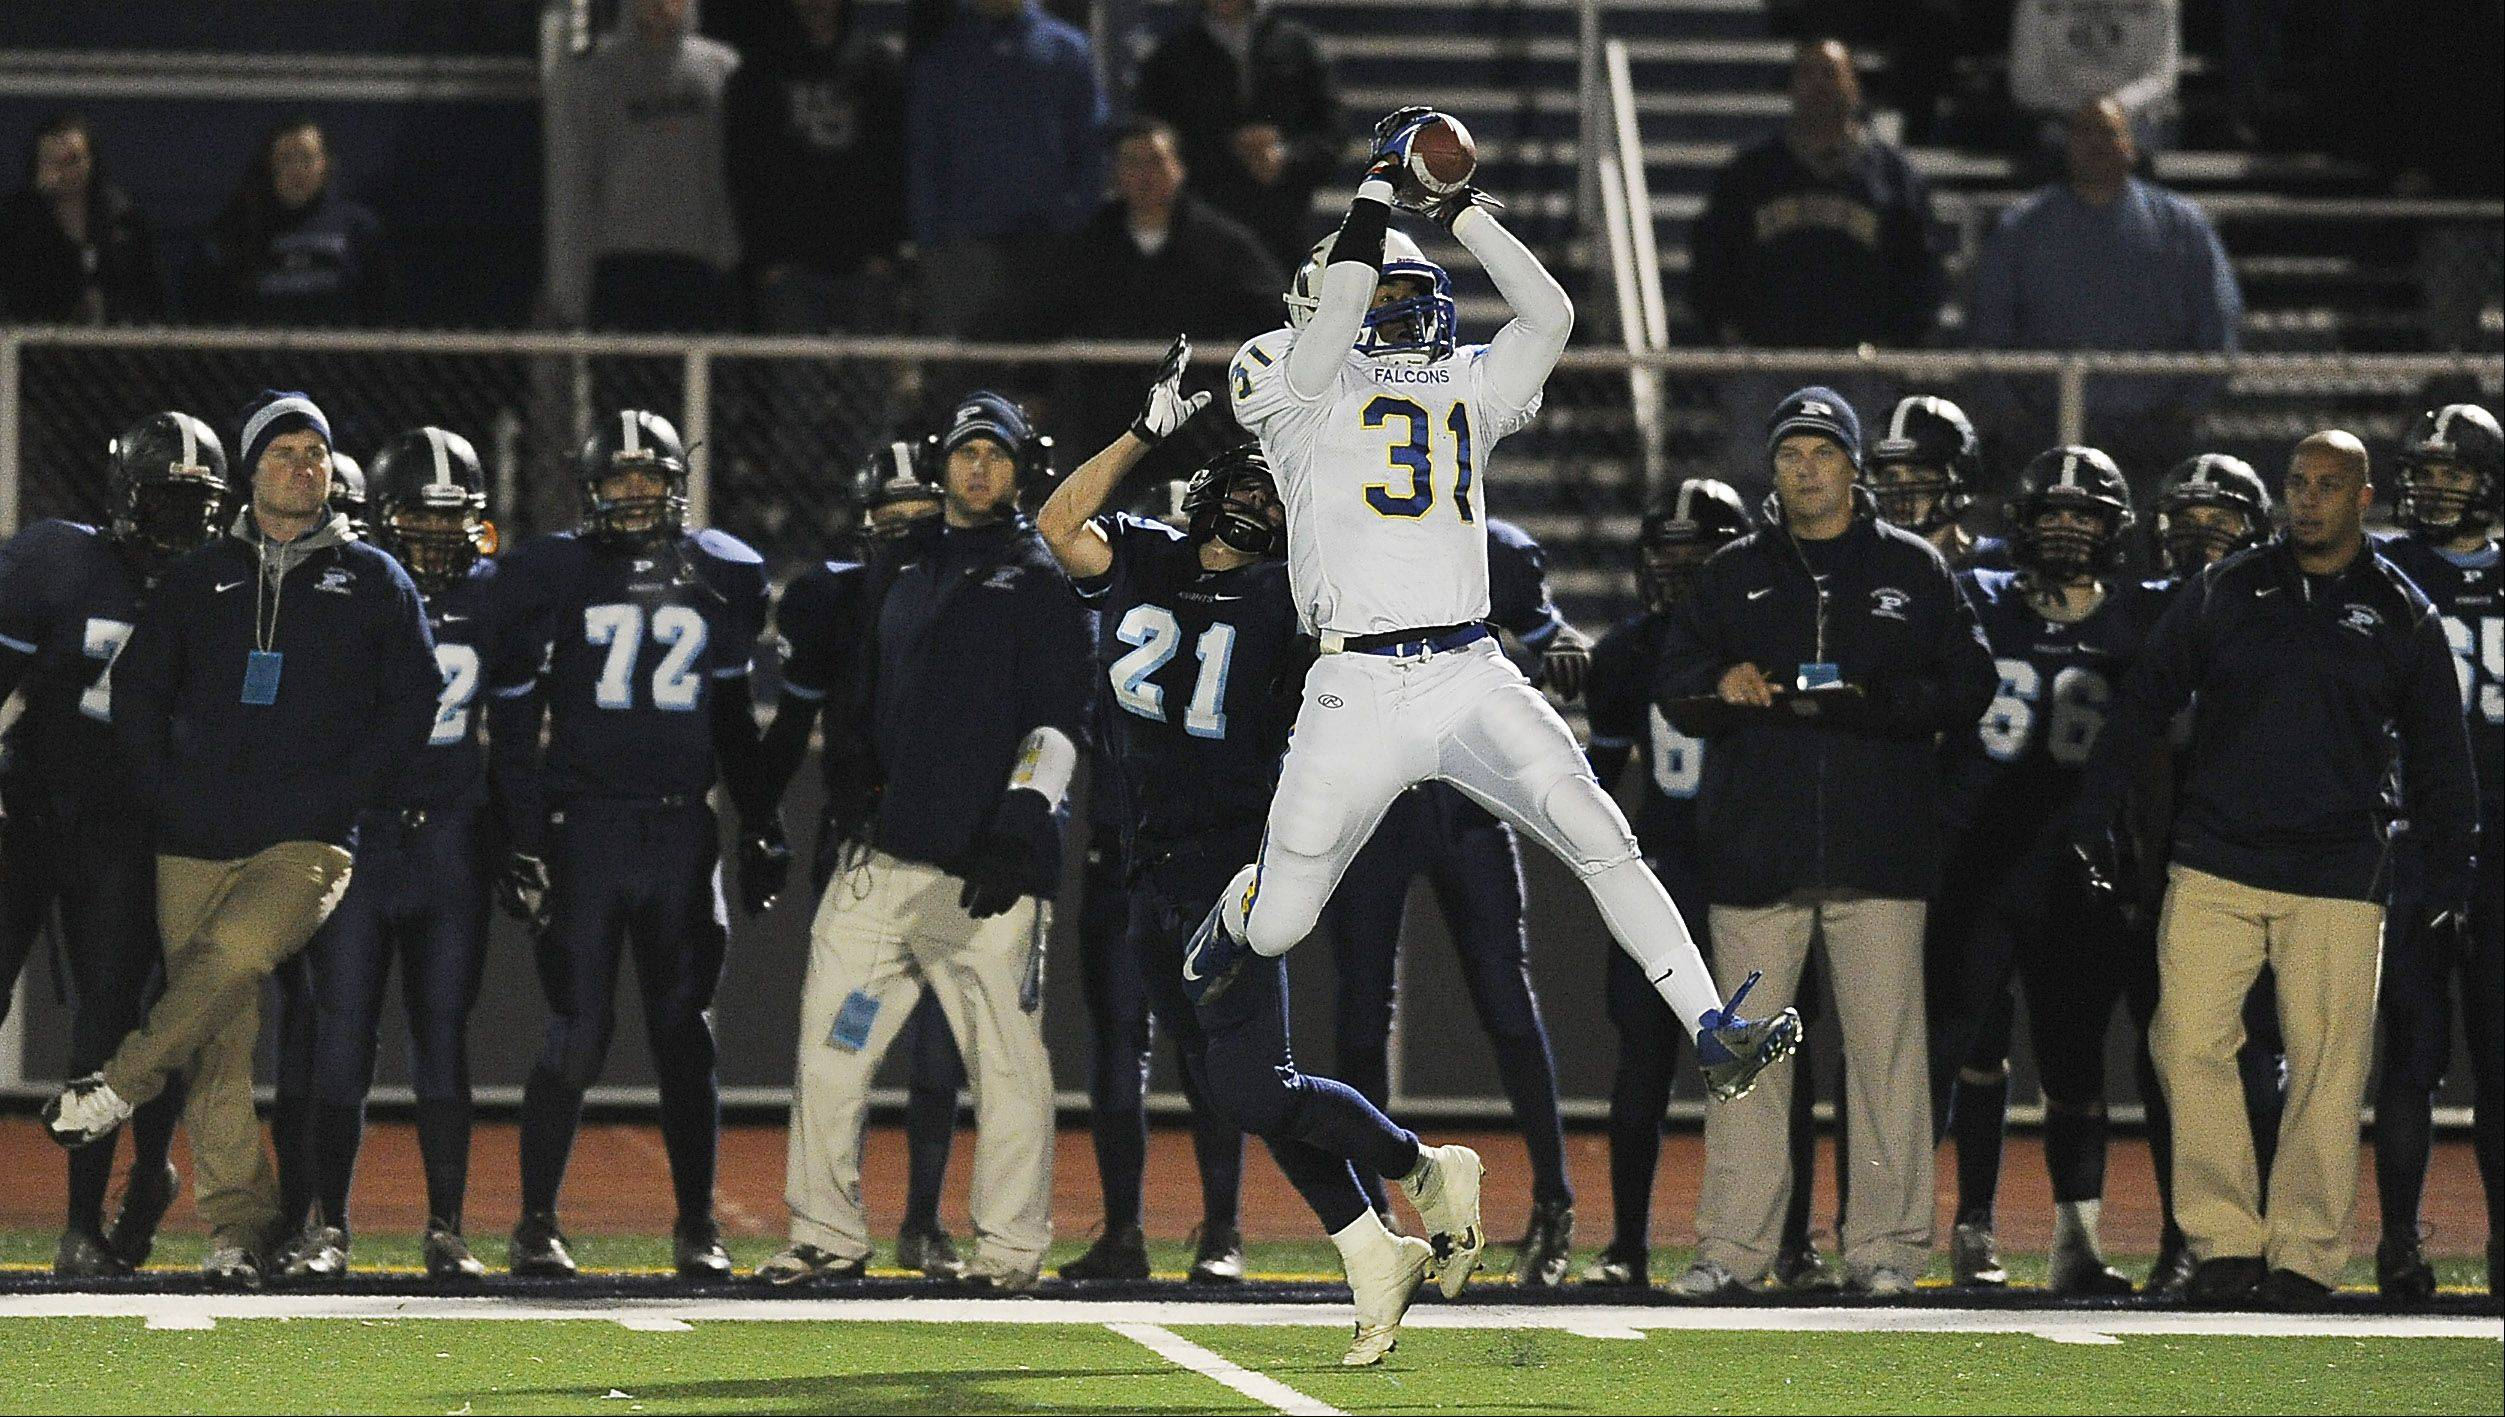 Wheaton North's Jaylen Howze in the fourth quarter intercepted this pass away from Prospect's Joe Gleason .